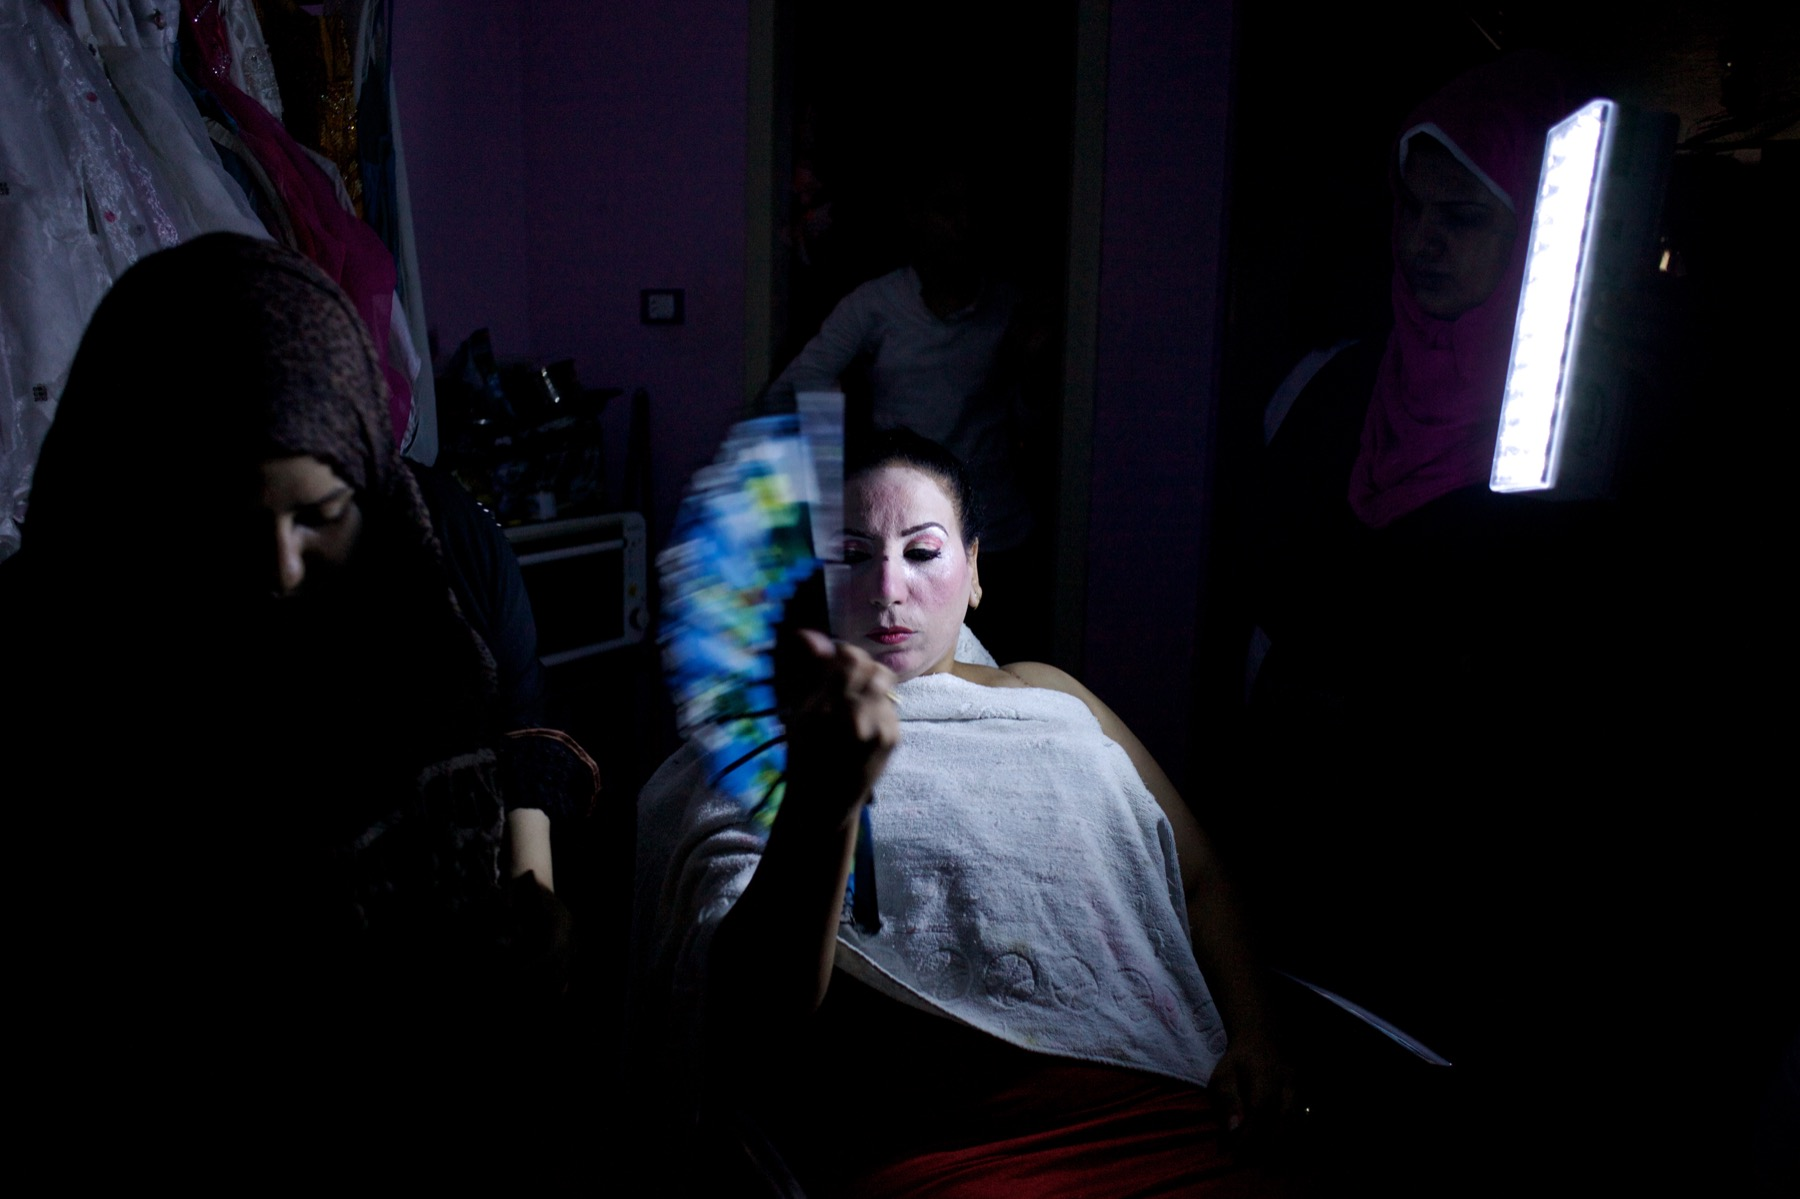 20 Rising Female Photojournalists You Should Know - Artsy